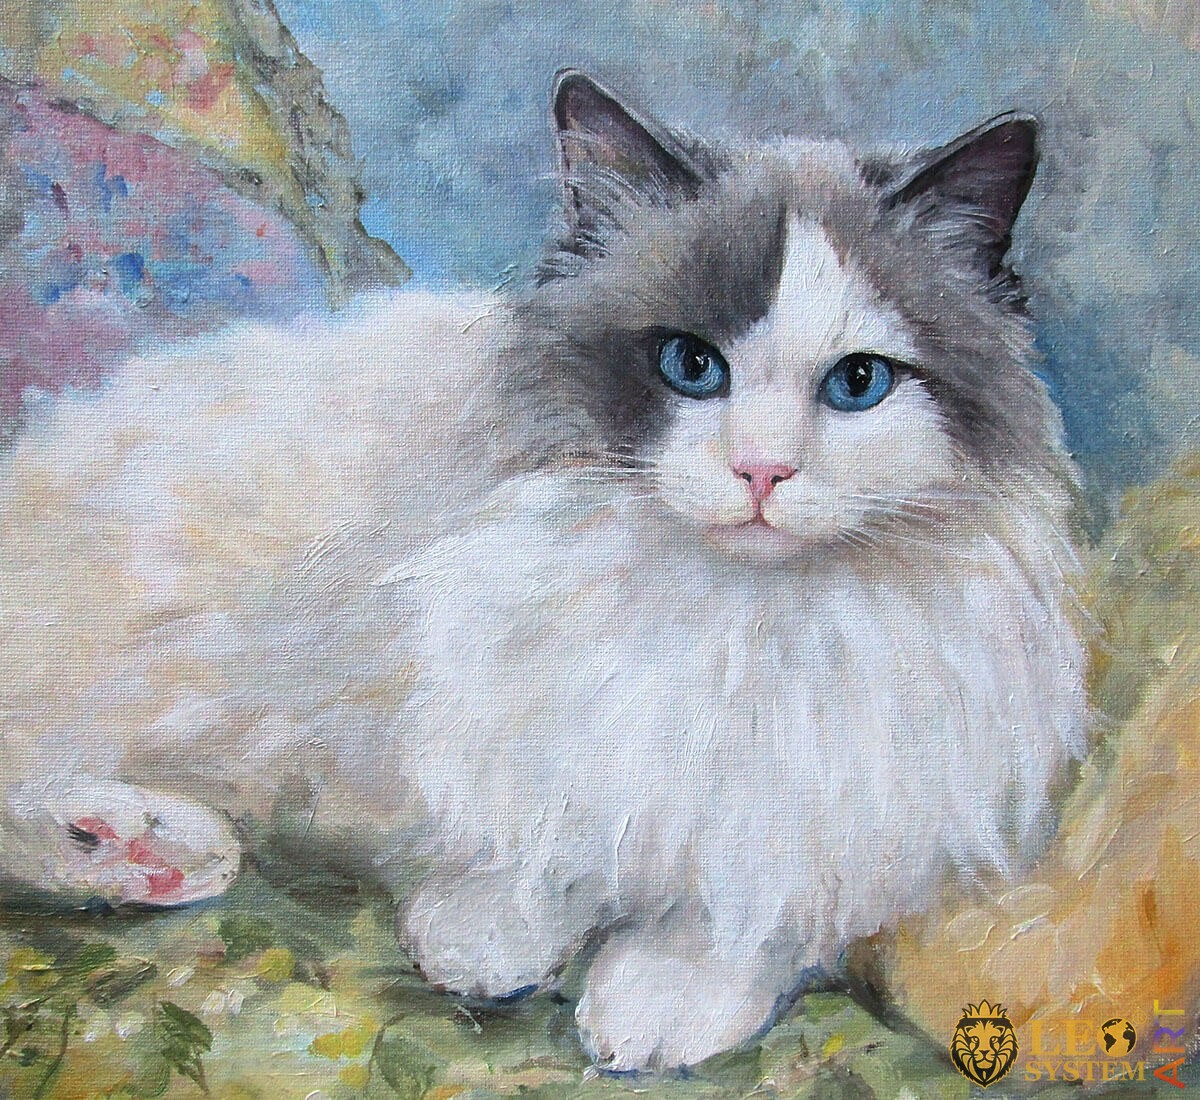 Beautiful cat with blue eyes looks attentively